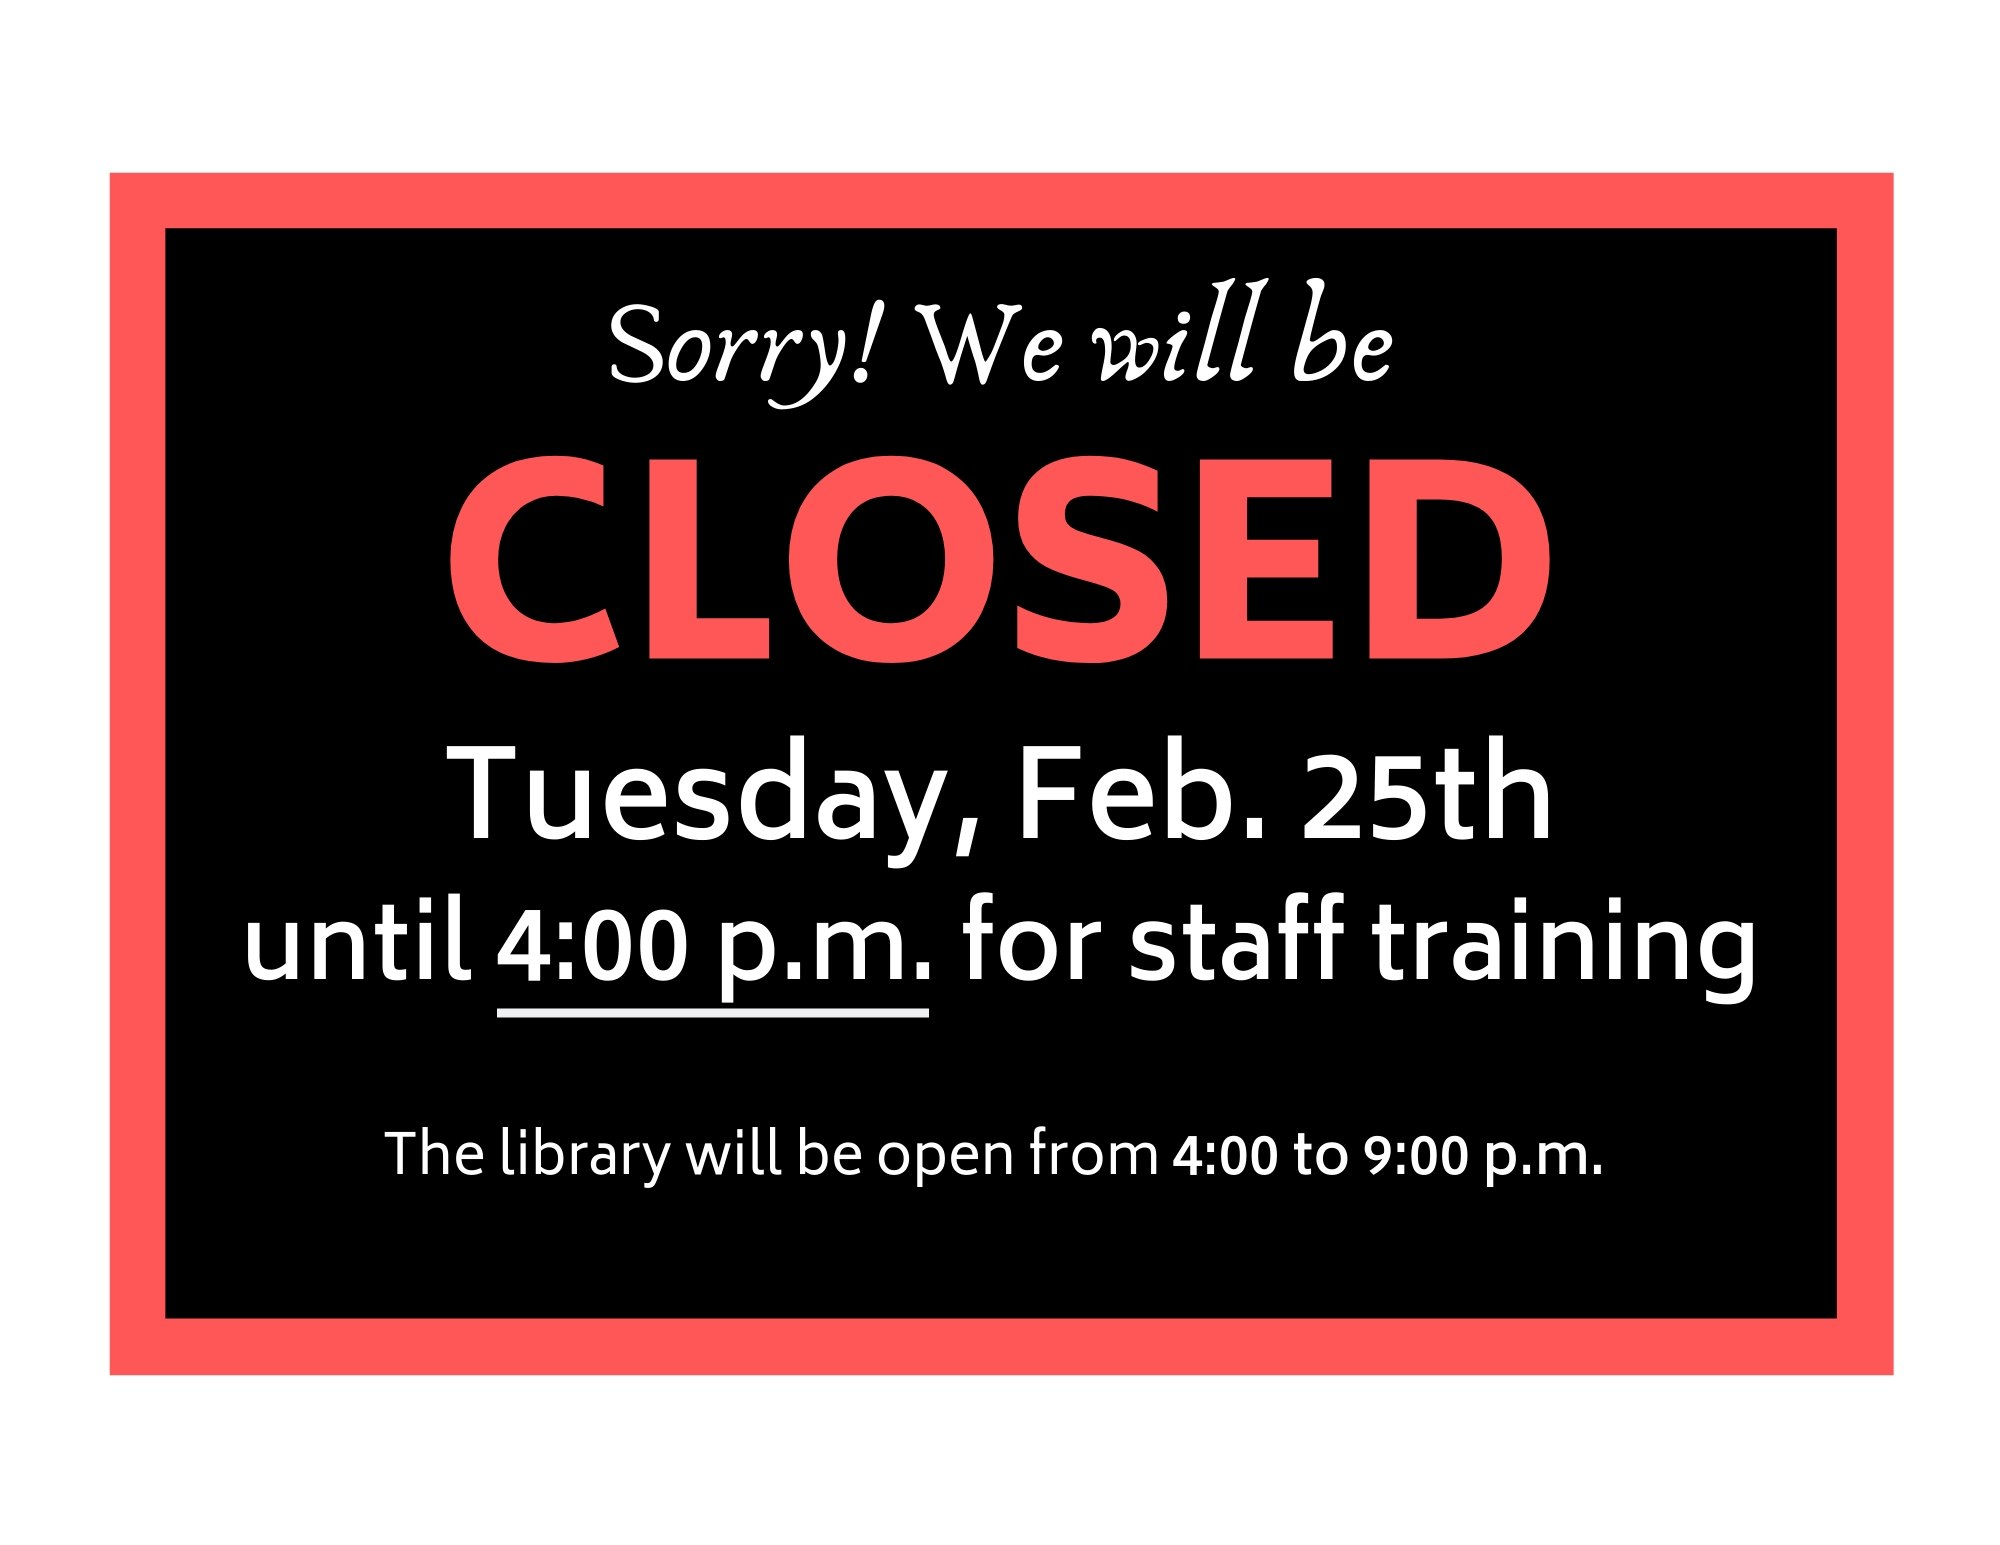 CLOSED until 4:00 p.m. @ Smithers Public Library